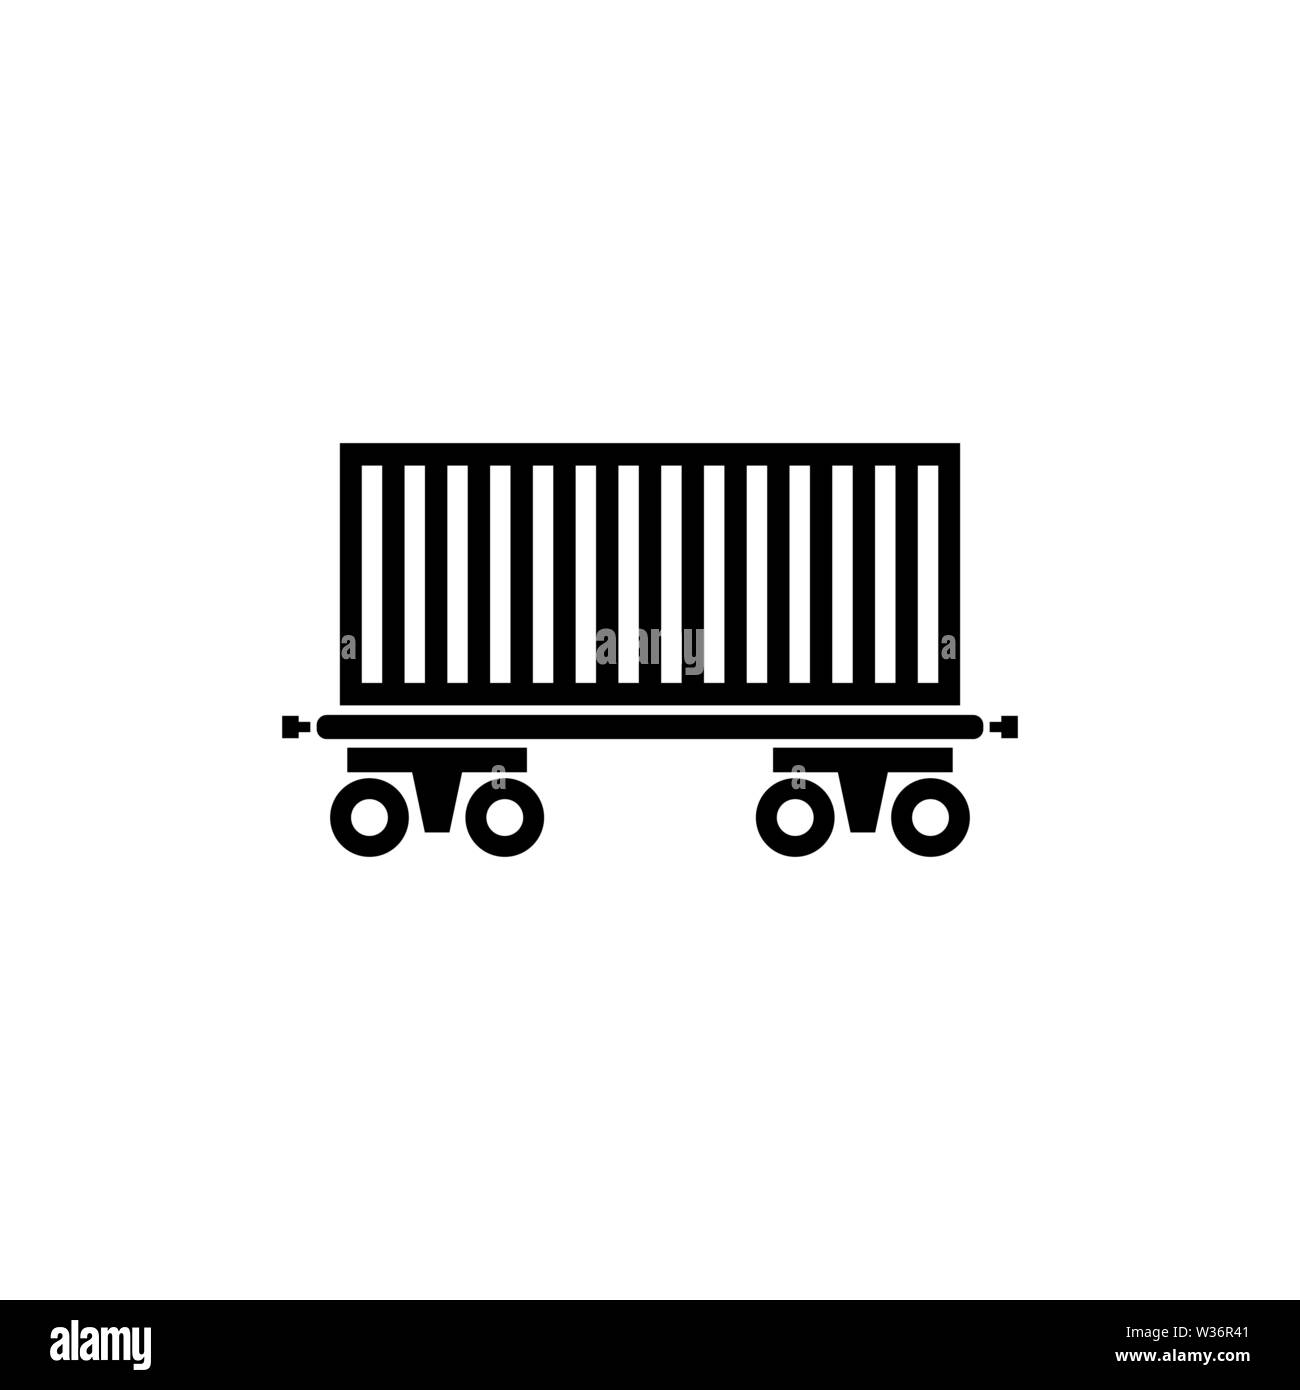 Rail Car Black and White Stock Photos & Images - Alamy